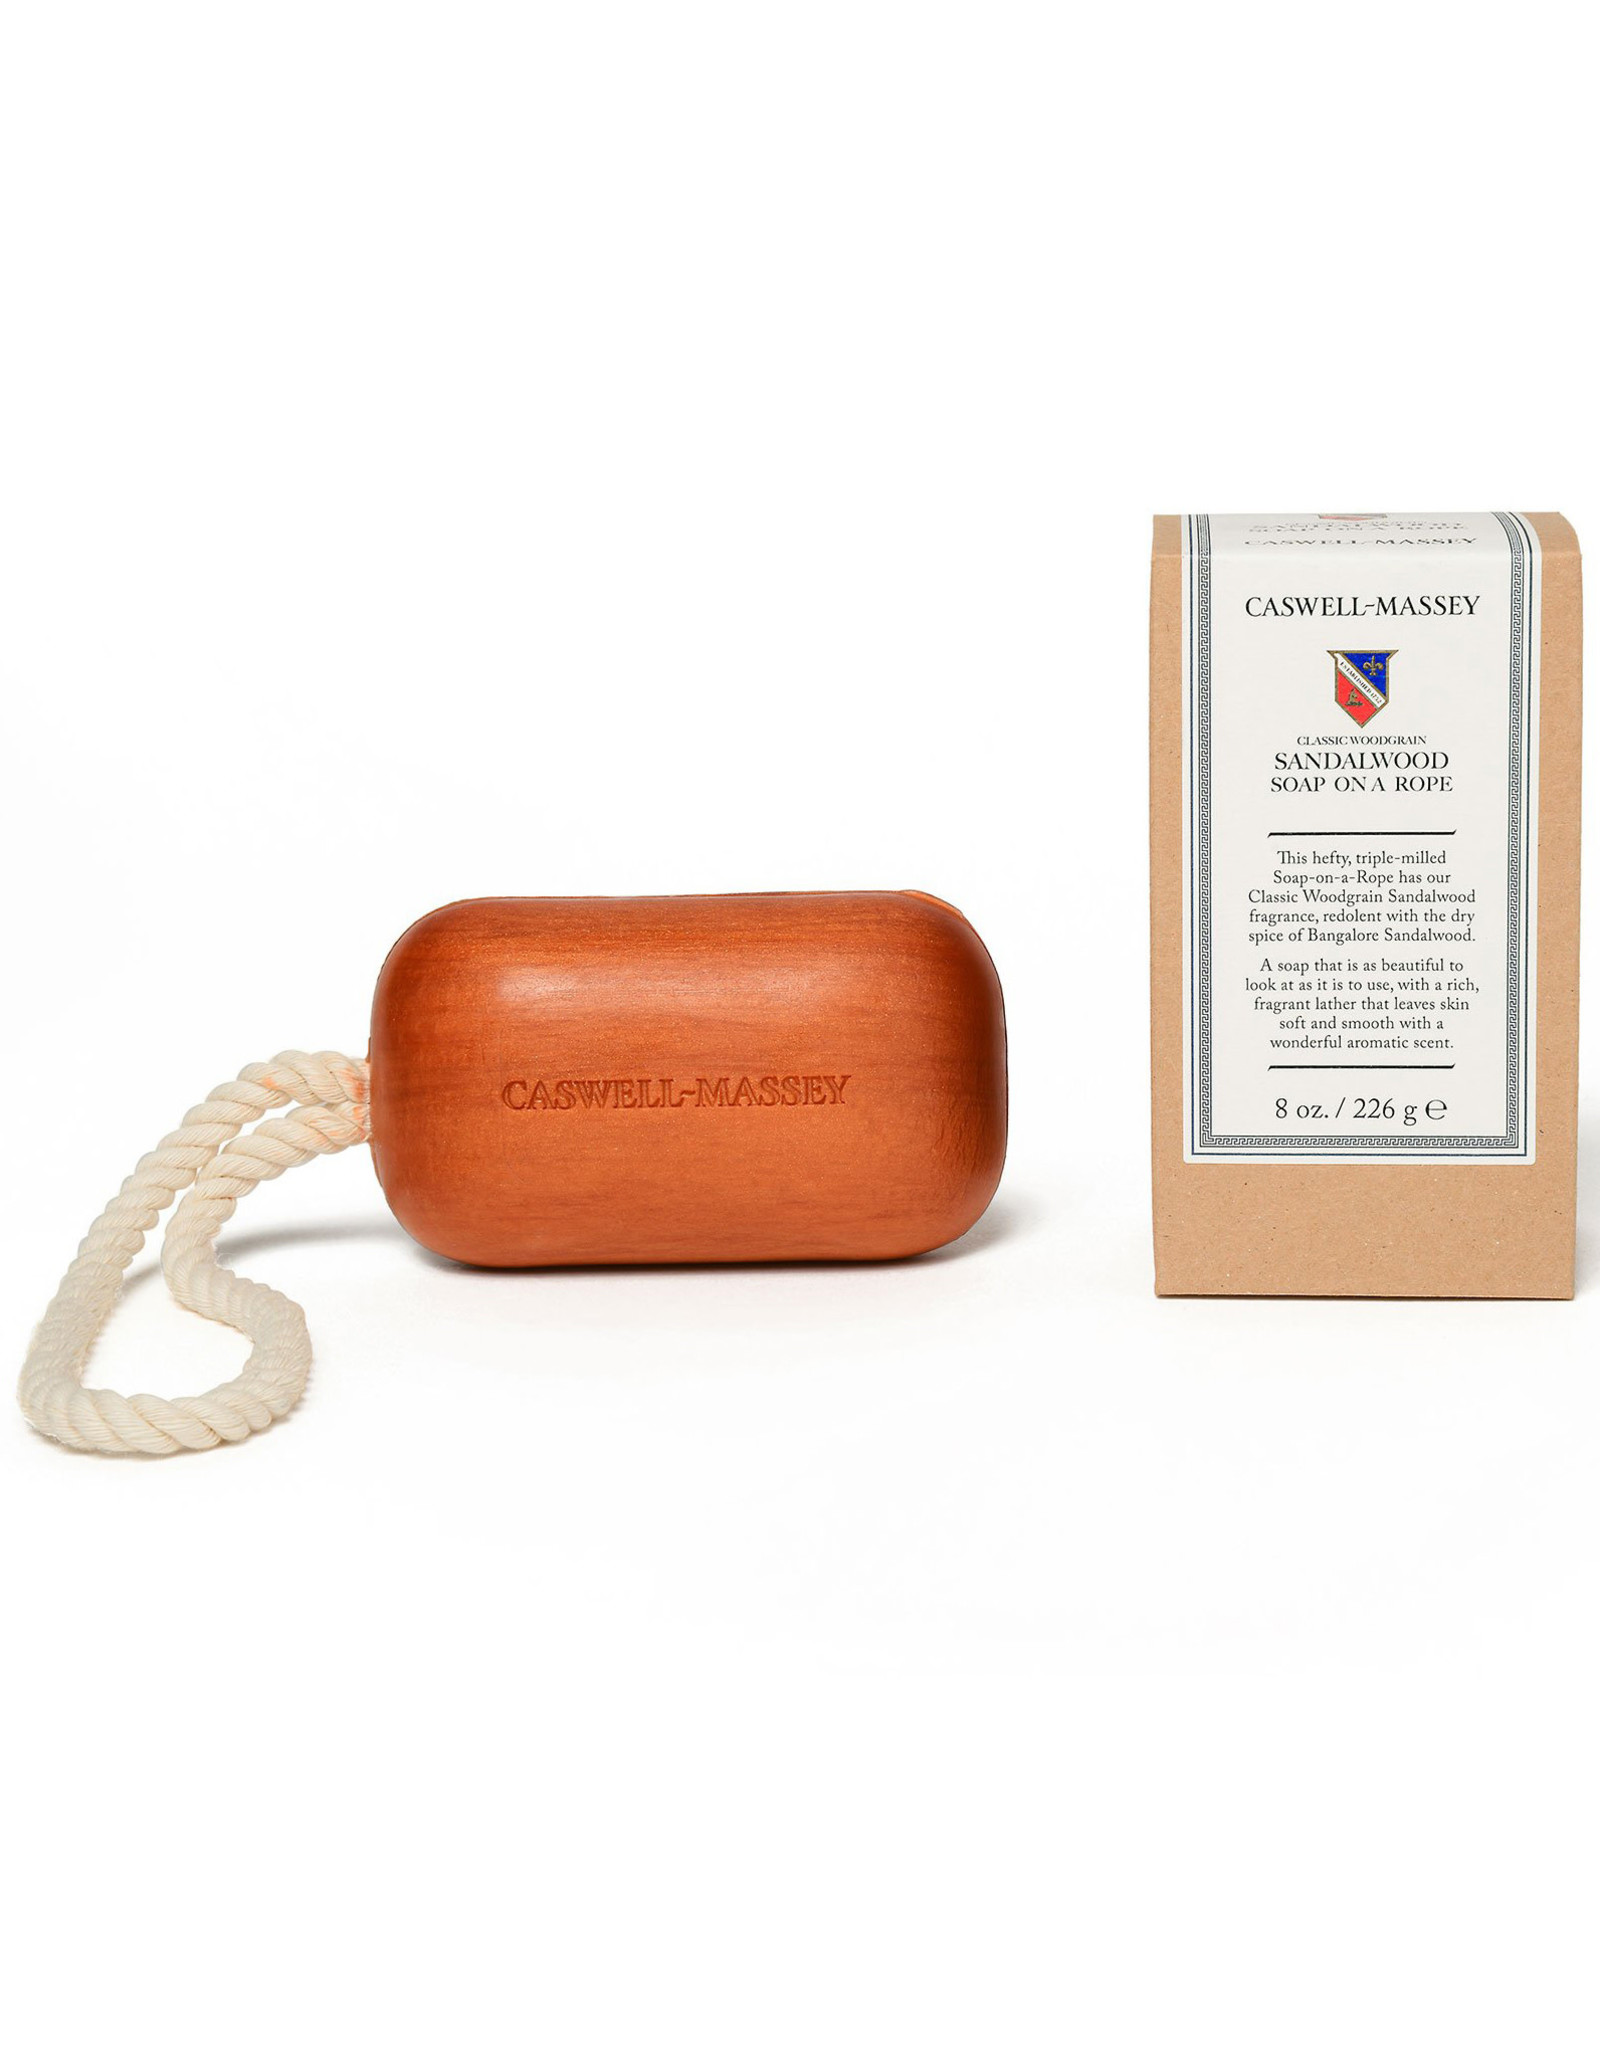 Caswell-Massey Apothecary Heritage Woodgrain Sandalwood Soap-on-a-Rope